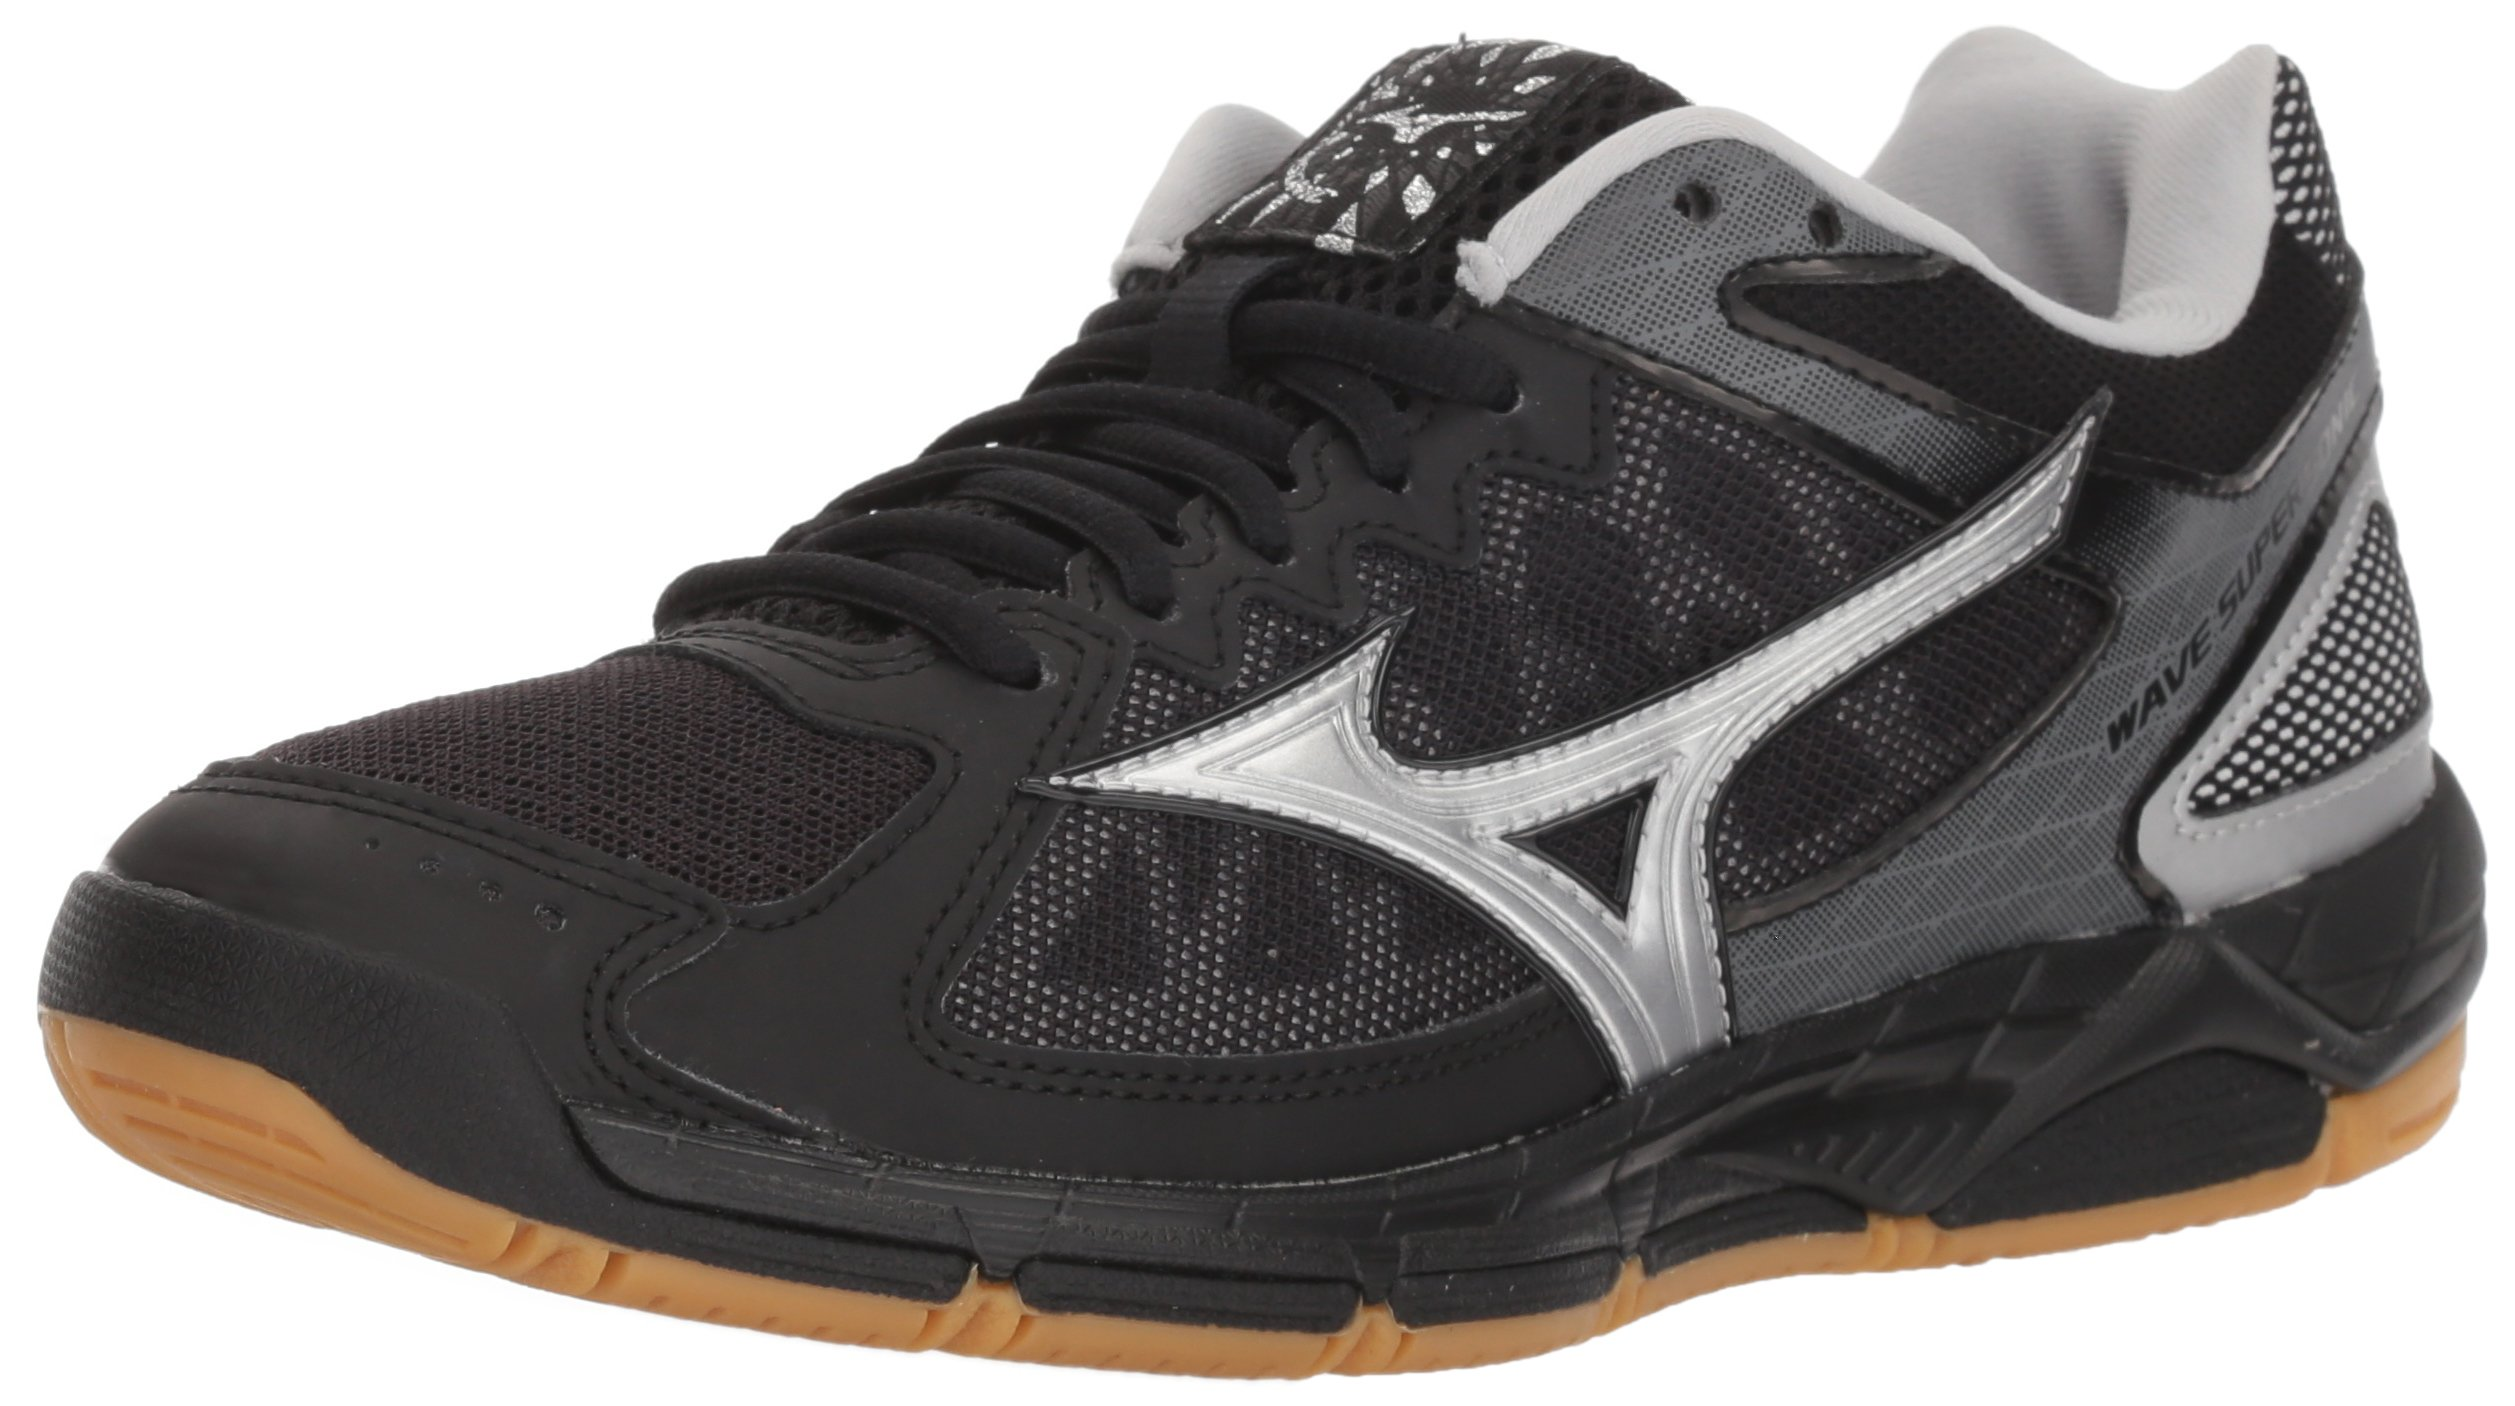 Mizuno Women's Wave Supersonic Volleyball Shoe, Black/Silver, Women's 7.5 B US